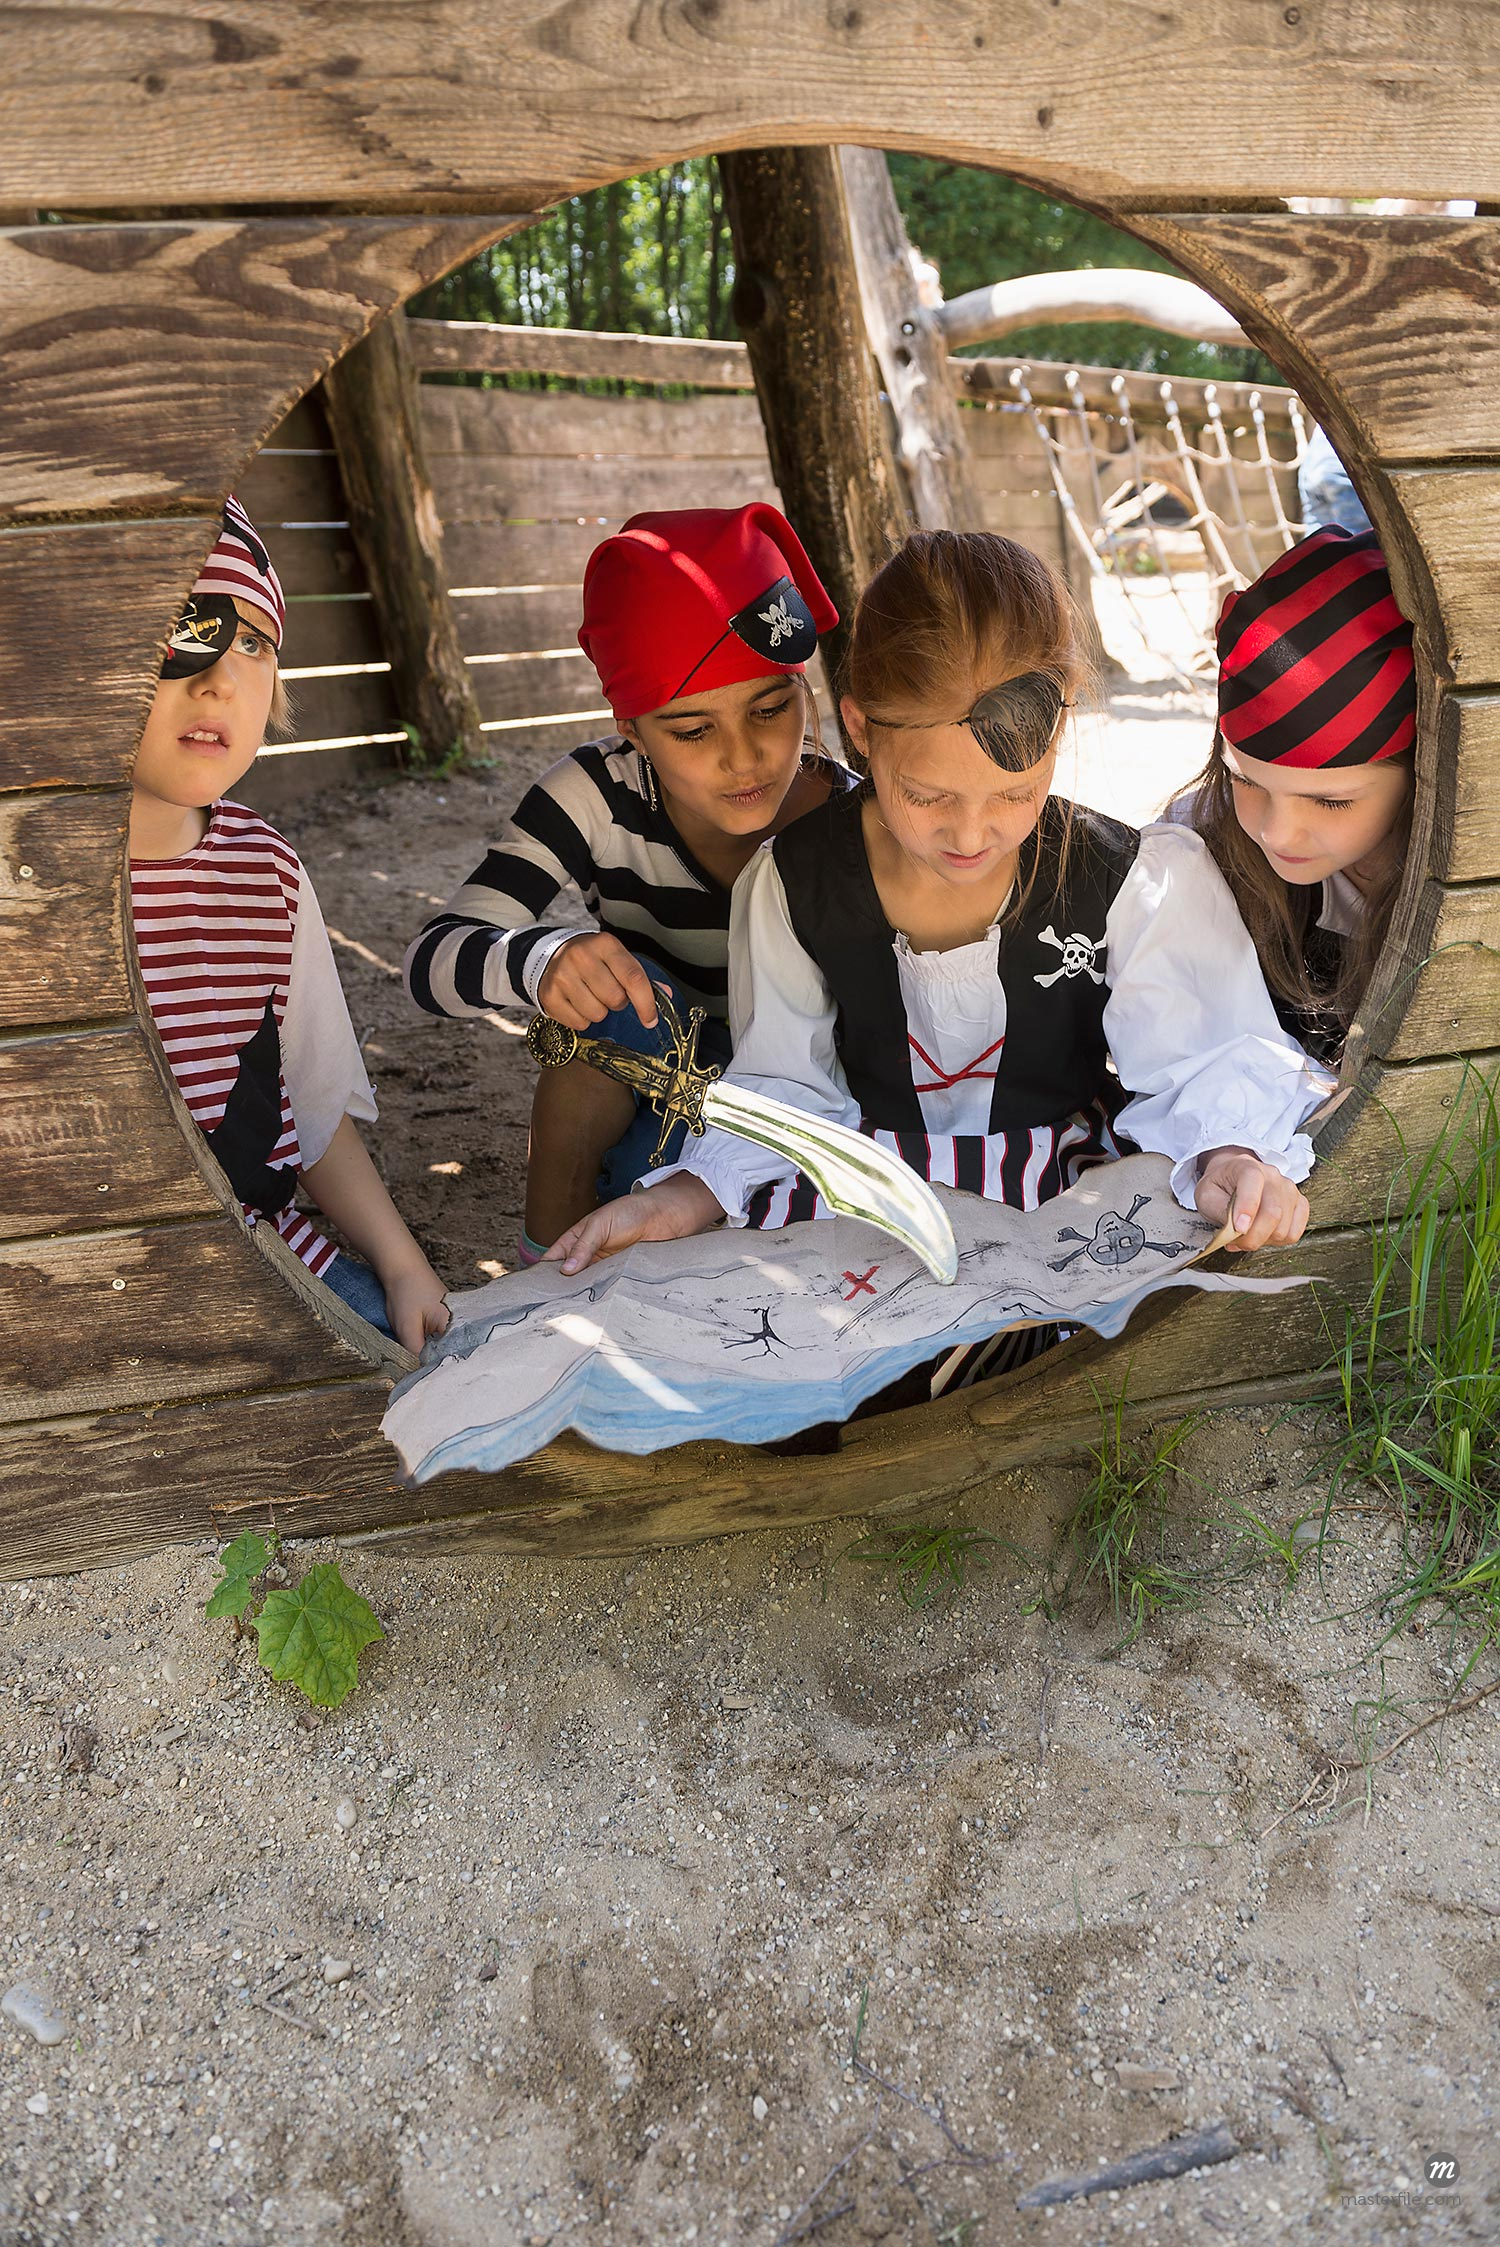 Girls dressed up as pirates watching a treasure map in adventure playground  © Masterfile